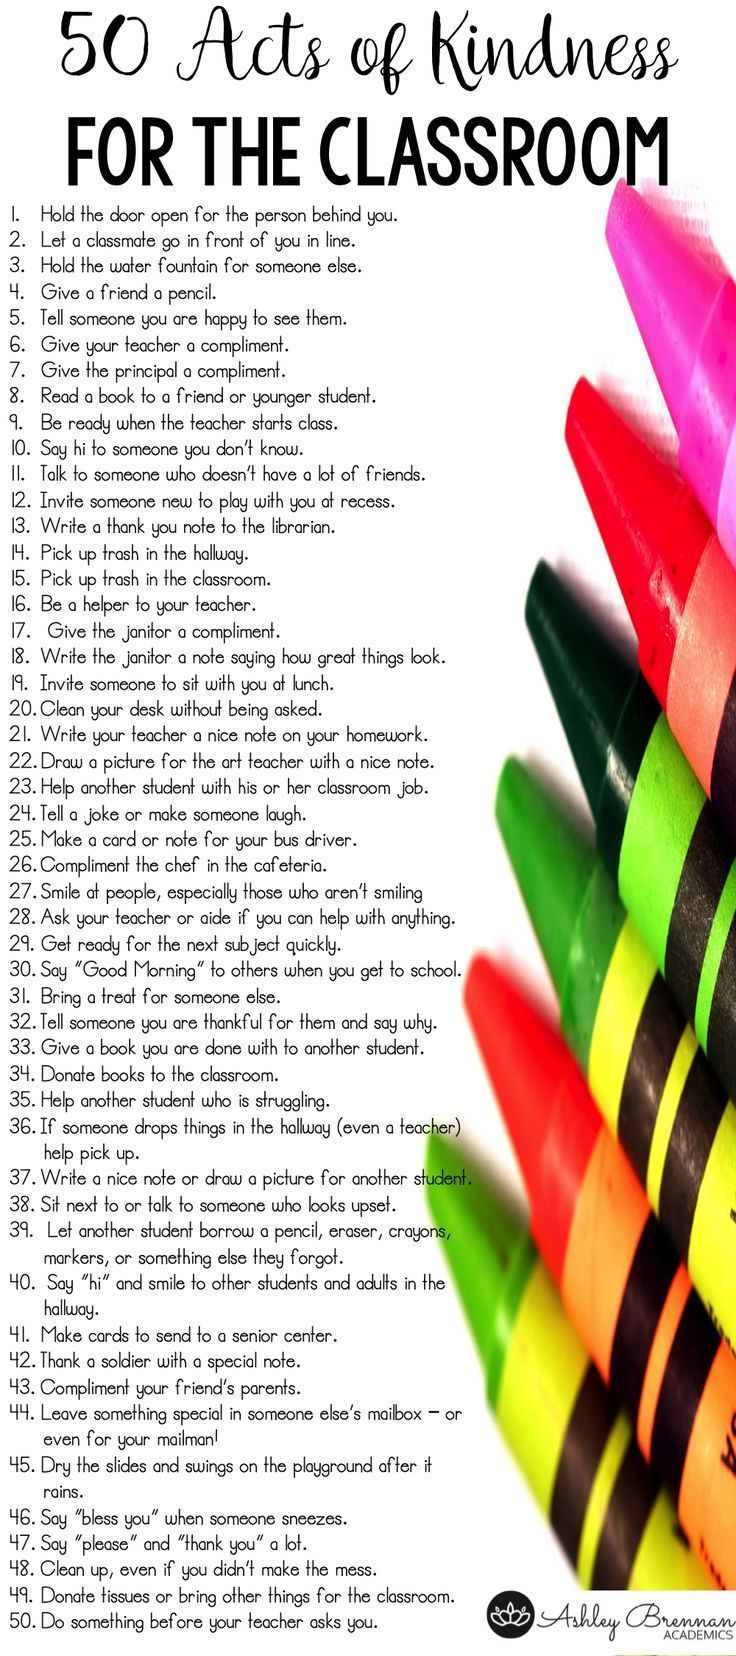 BEAUTIFUL!!! 50 acts of kindness for the classroom! These 50 ideas are meant specifically for students to use at school.